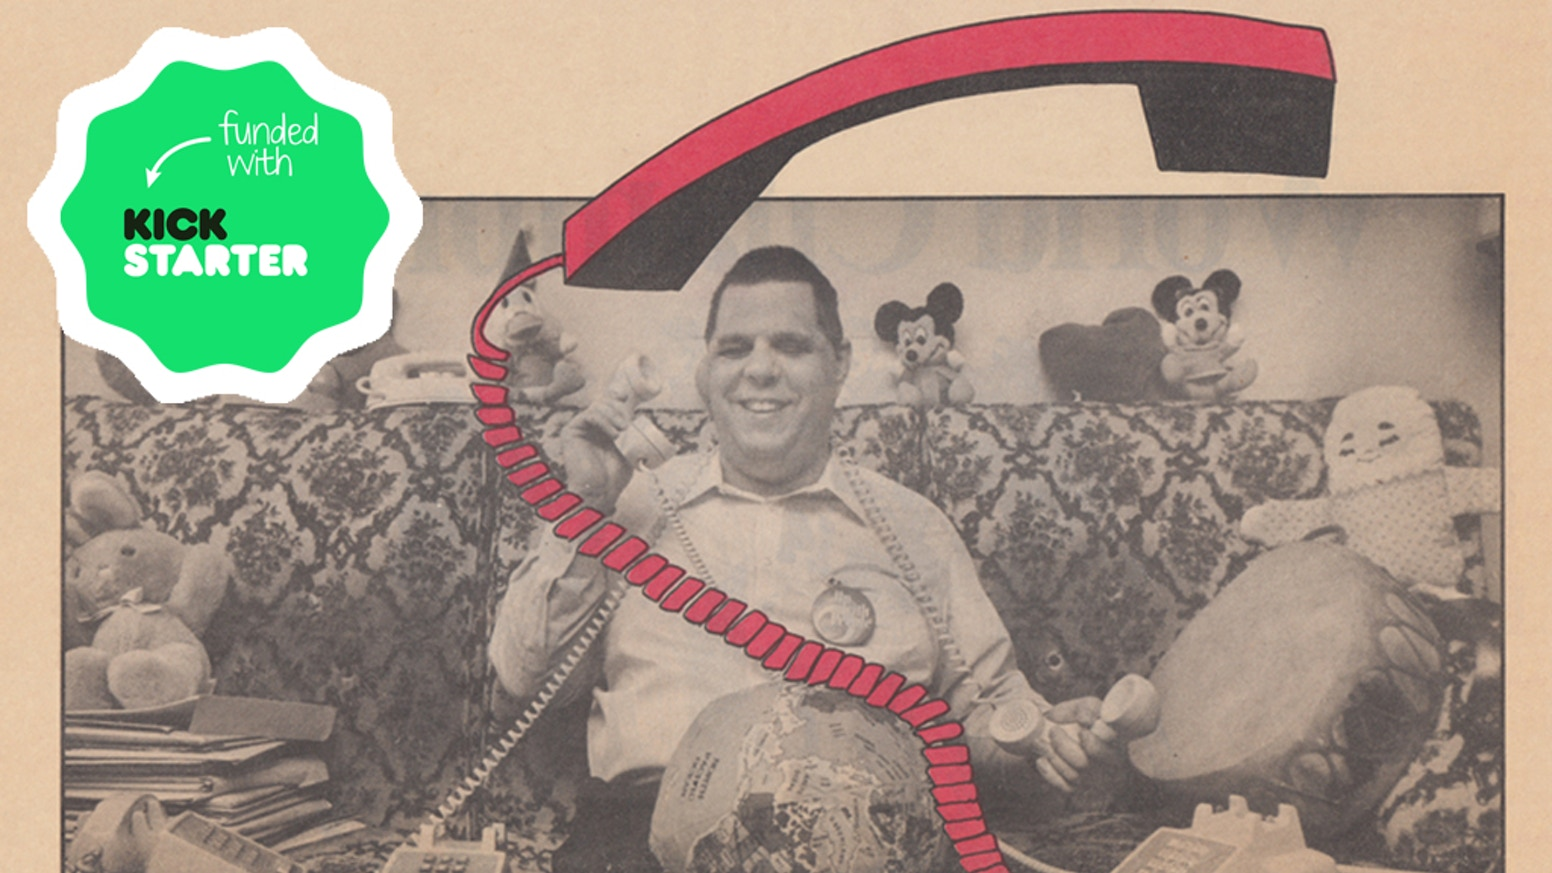 The amazing true story of Joe Engressia Jr., a blind telephone hacker genius, who legally changed his name to Joybubbles.